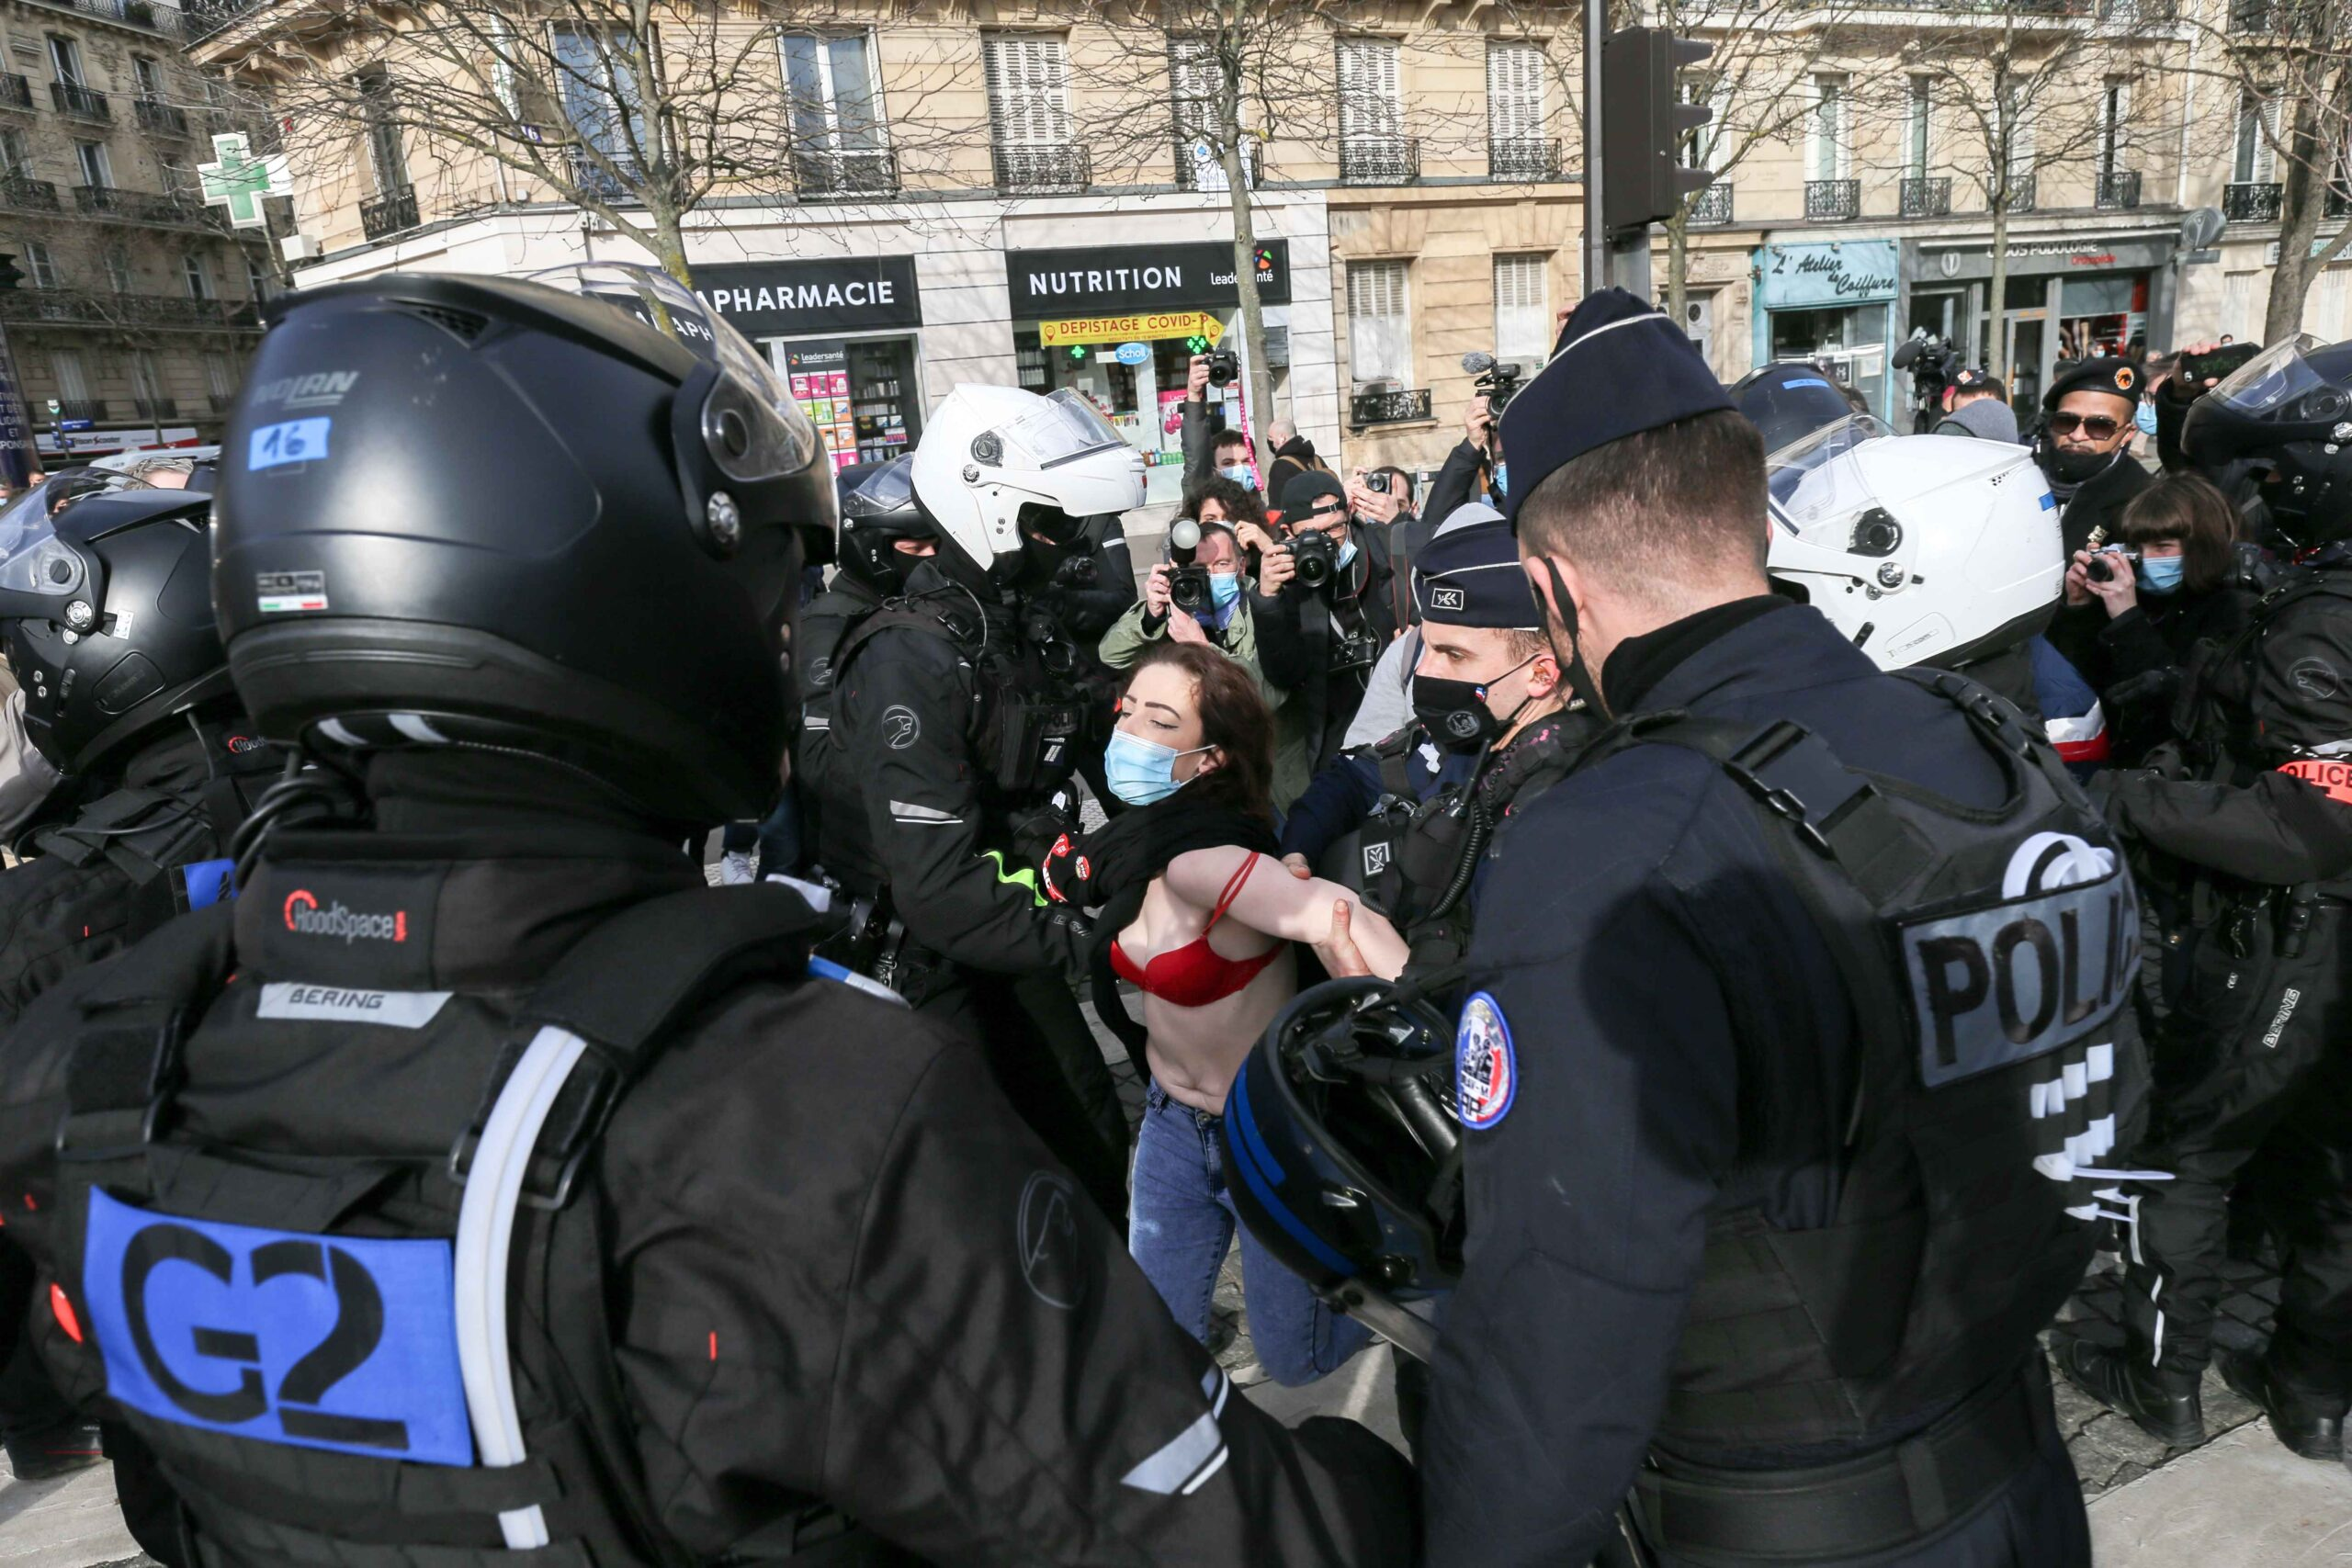 Policemen push off an « anti-fascist » counterprotest, during a demonstration against the far right Generation Identitaire group's potential dissolution in Place Denfert Rochereau, in Paris on February 20, 2021. The dissolution of Generation identitaire